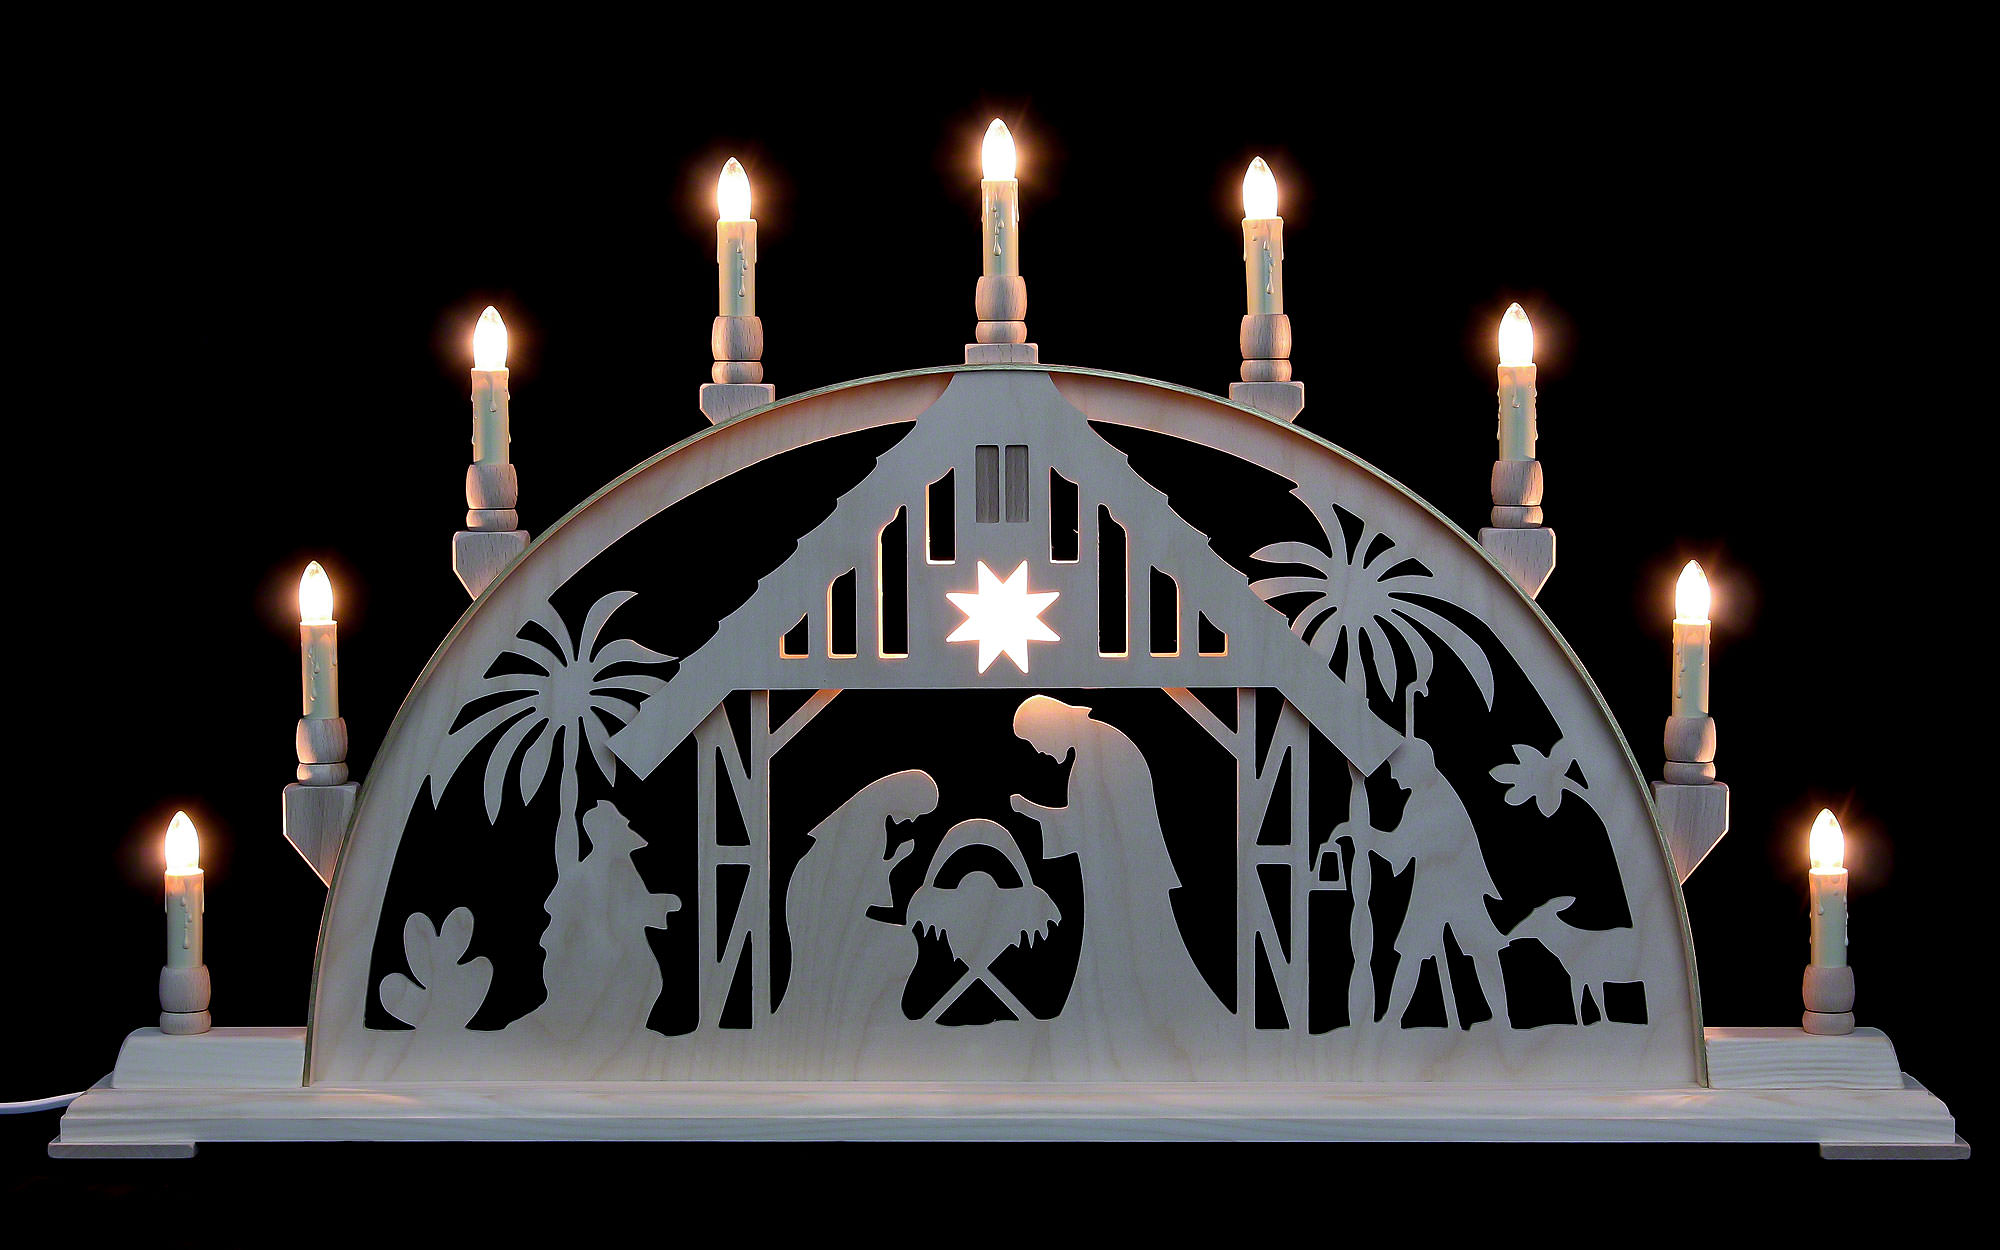 candle arch nativity scene 78 42 cm 31 17in by. Black Bedroom Furniture Sets. Home Design Ideas